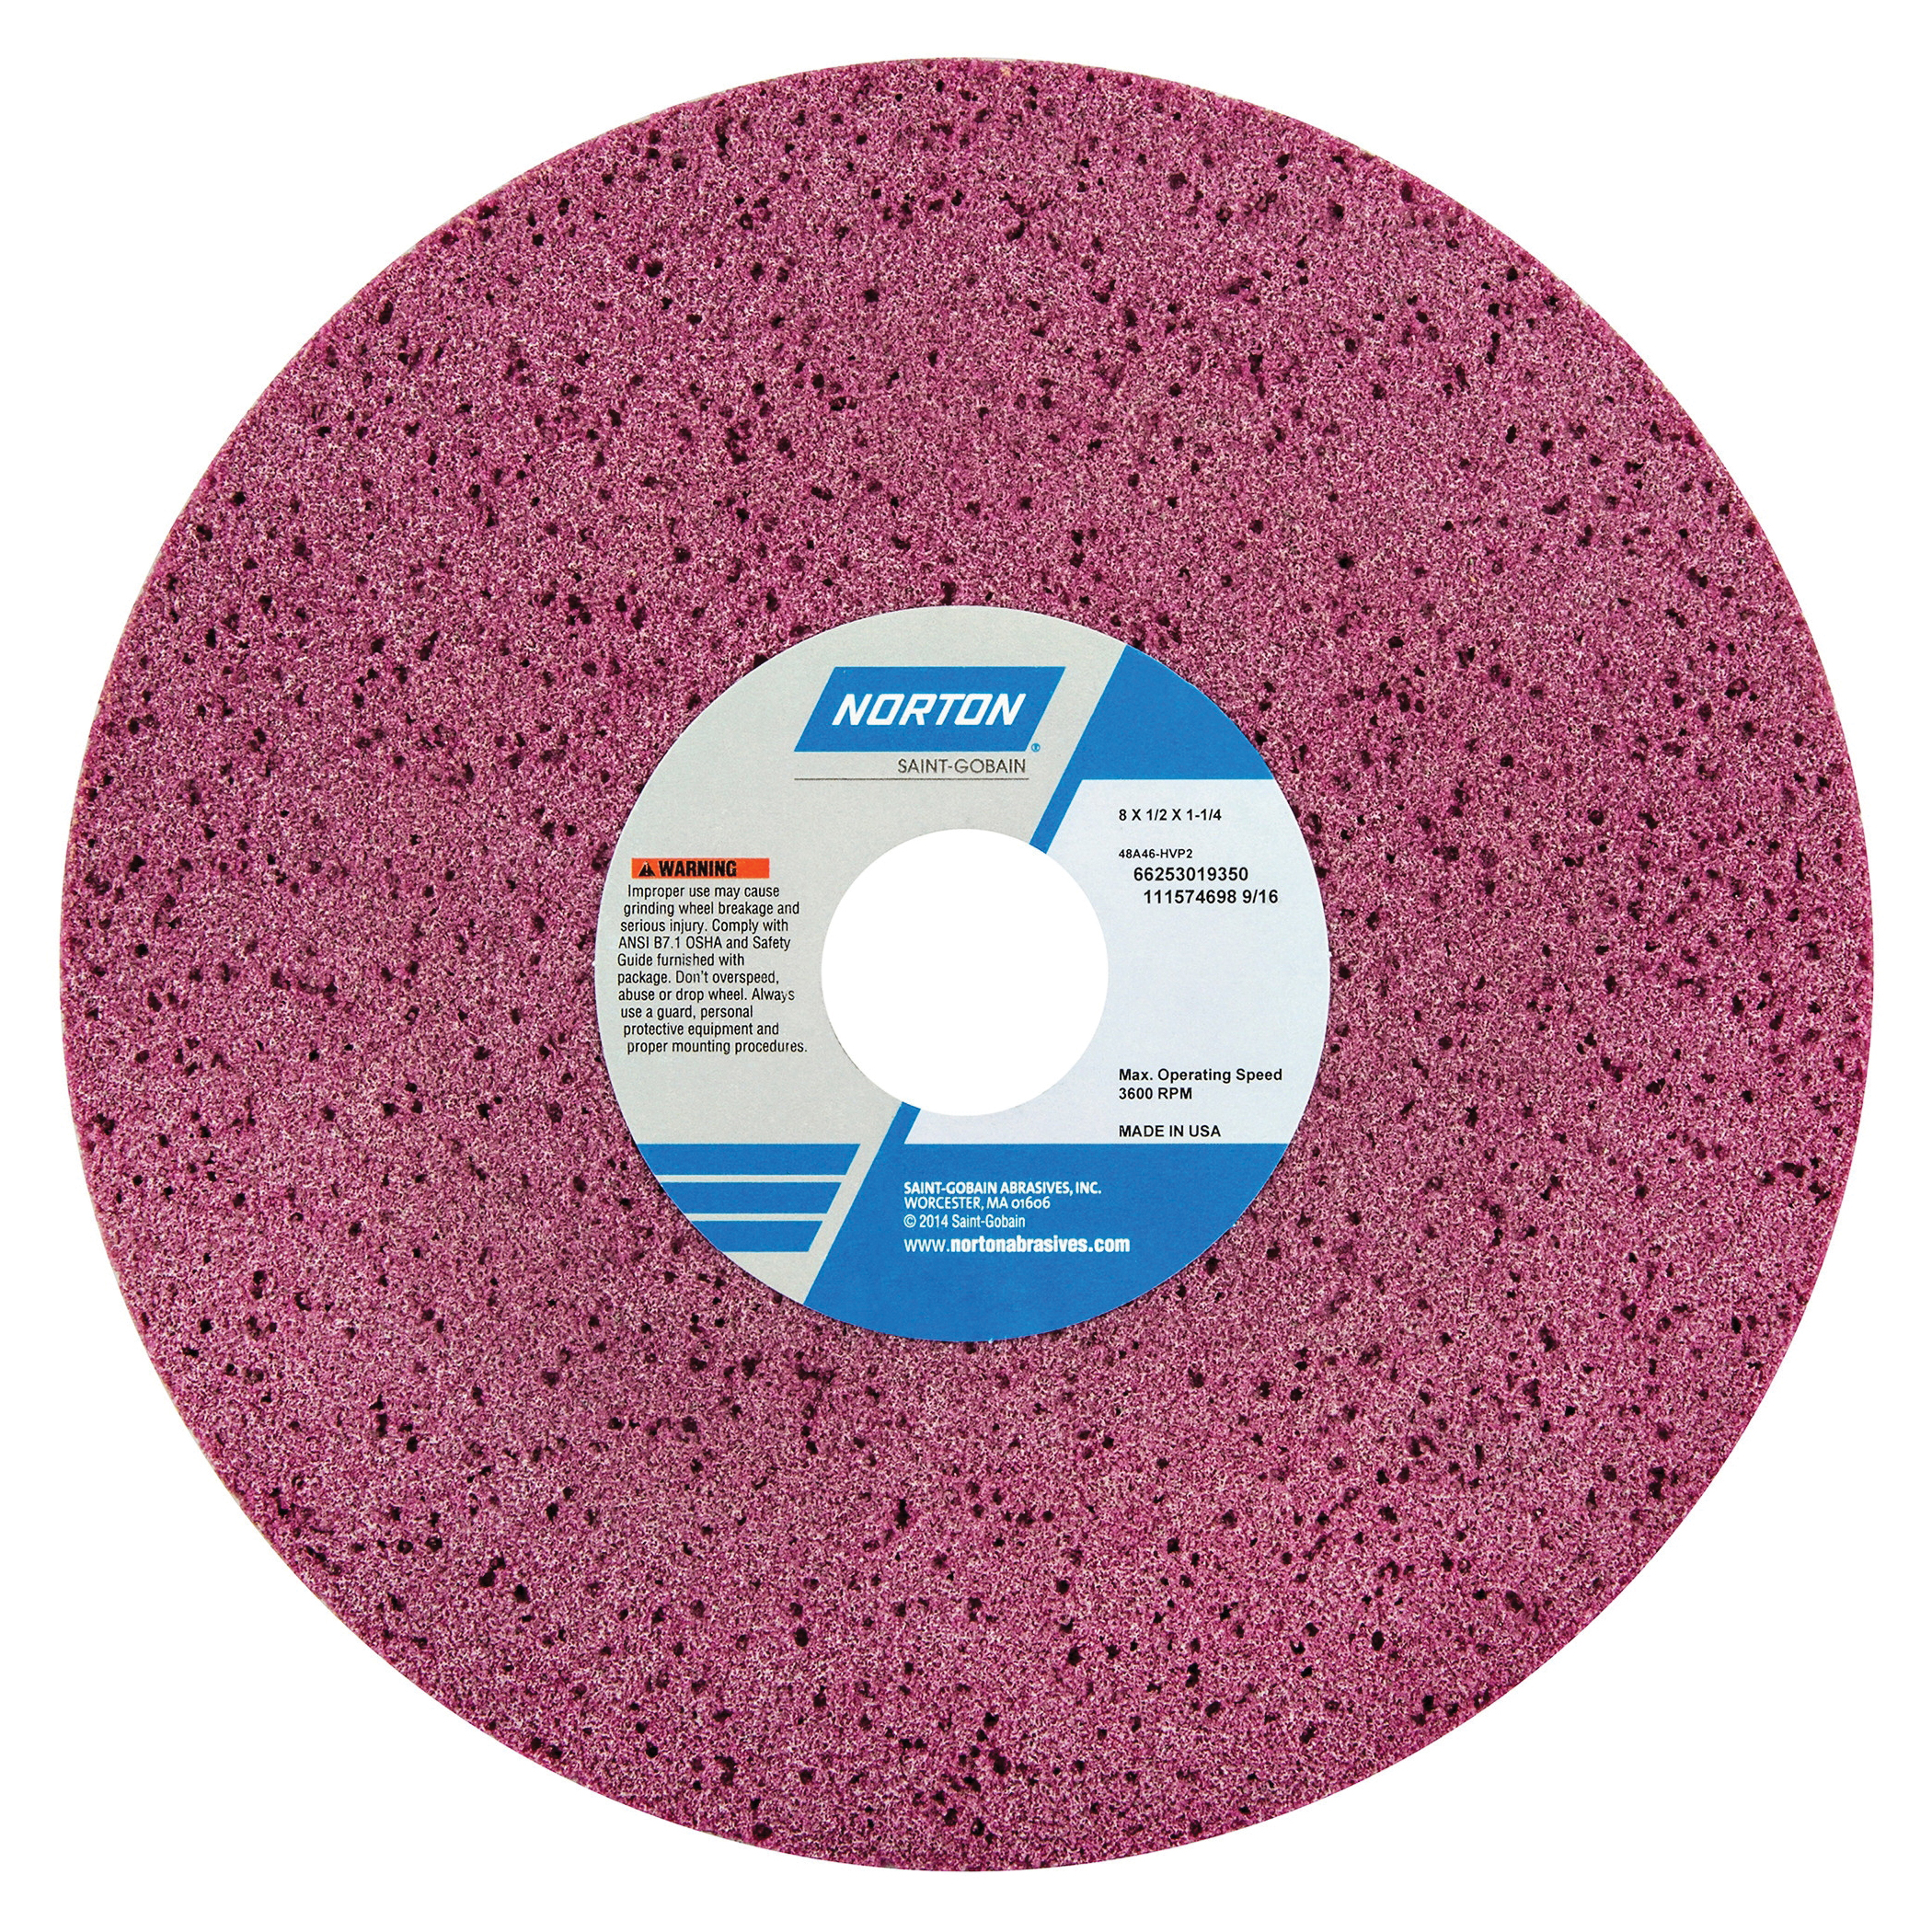 Norton® 66253019350 48A Straight Toolroom Wheel, 8 in Dia x 1/2 in THK, 1-1/4 in Center Hole, 46 Grit, Aluminum Oxide Abrasive